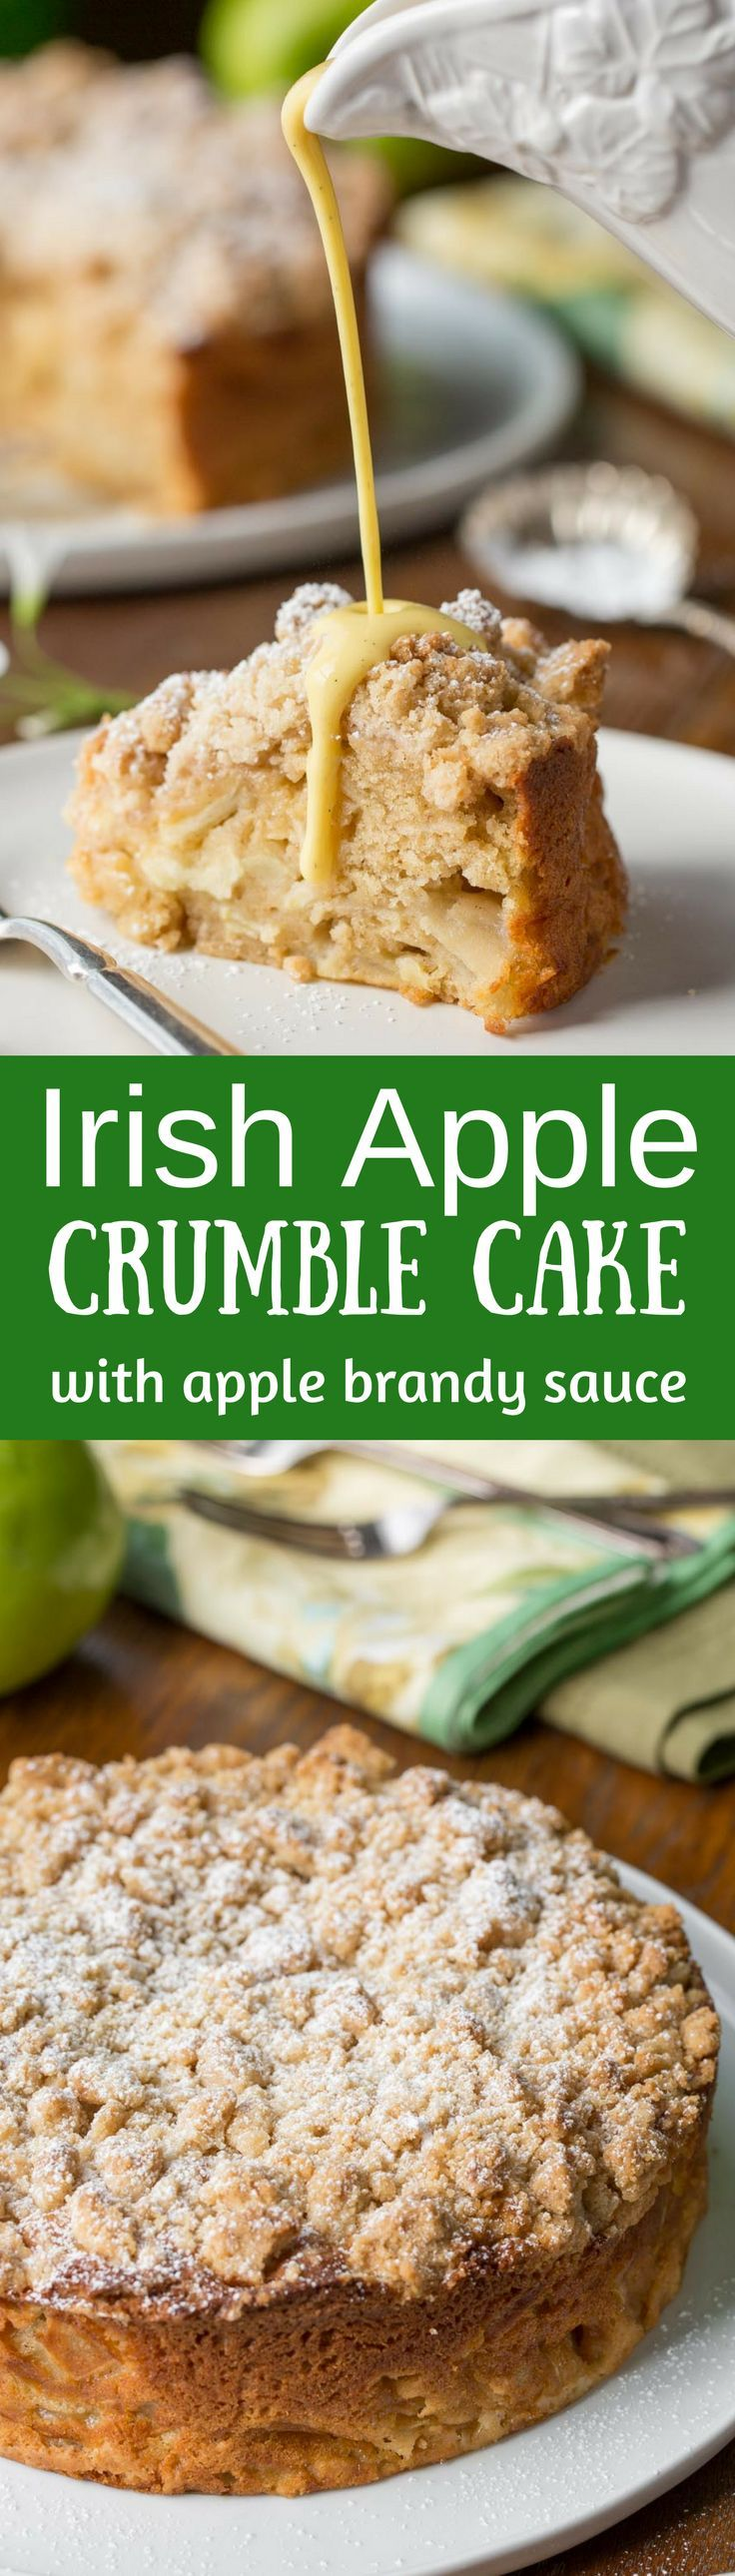 Irish Apple Crumble Cake with Apple Brandy Sauce ~ made with fresh apples, plenty of cinnamon, and a sweet crumble top, this rustic and moist cake is homey and delightful especially when drizzled with the Apple Brandy Sauce! www.savingdessert.com